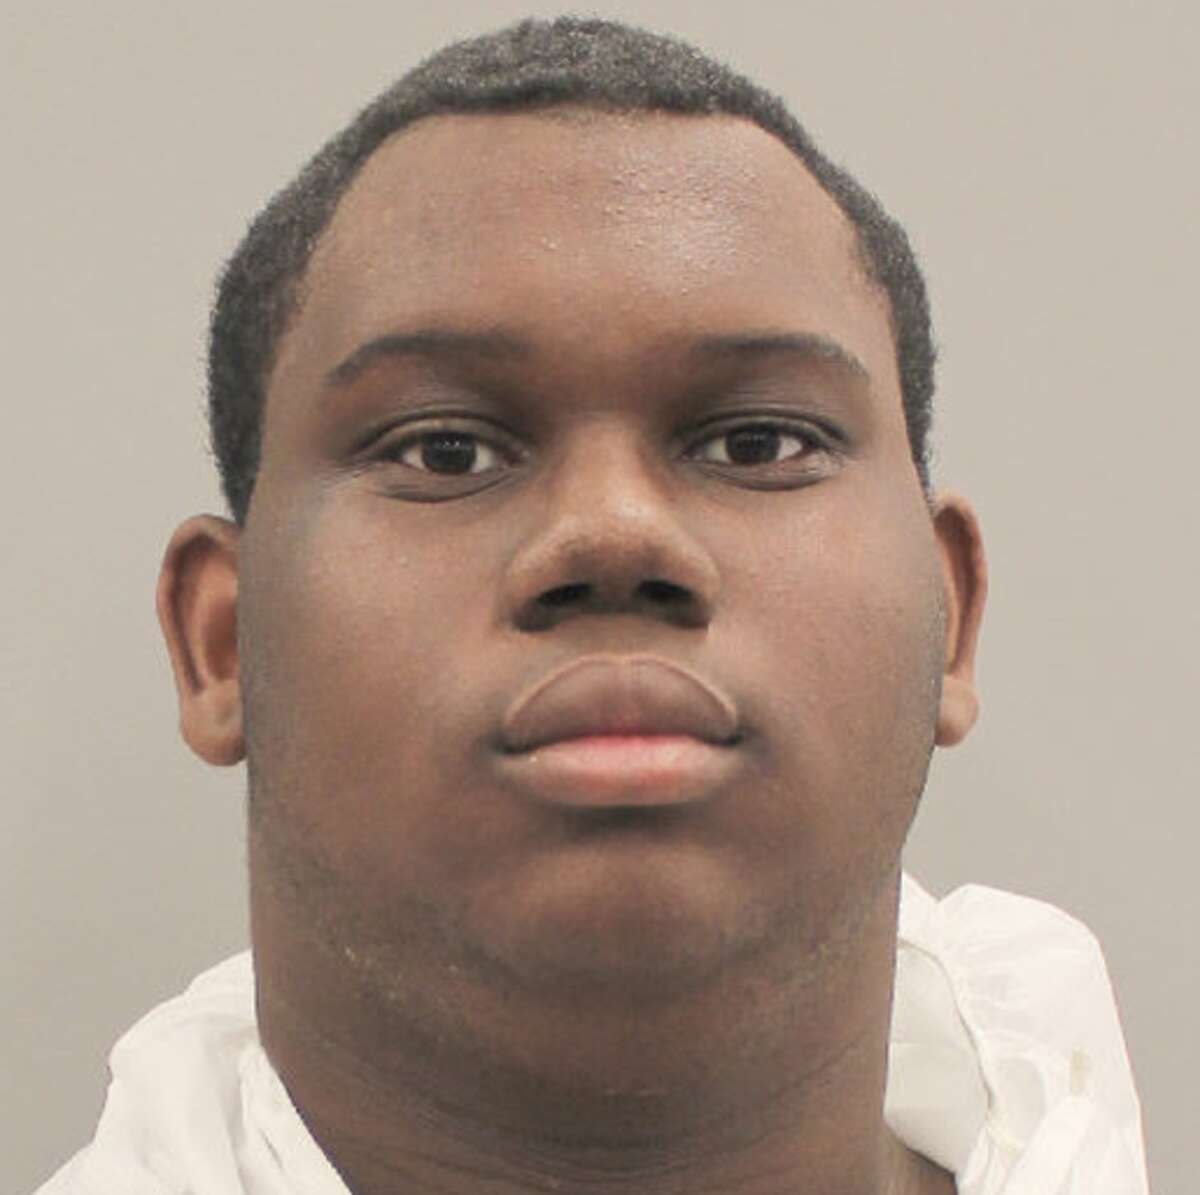 Carlos Raushawn Cacho, 18, is charged with murder in the death of his father, Carlos Colon Cacho, on Wednesday, July 17, 2019.